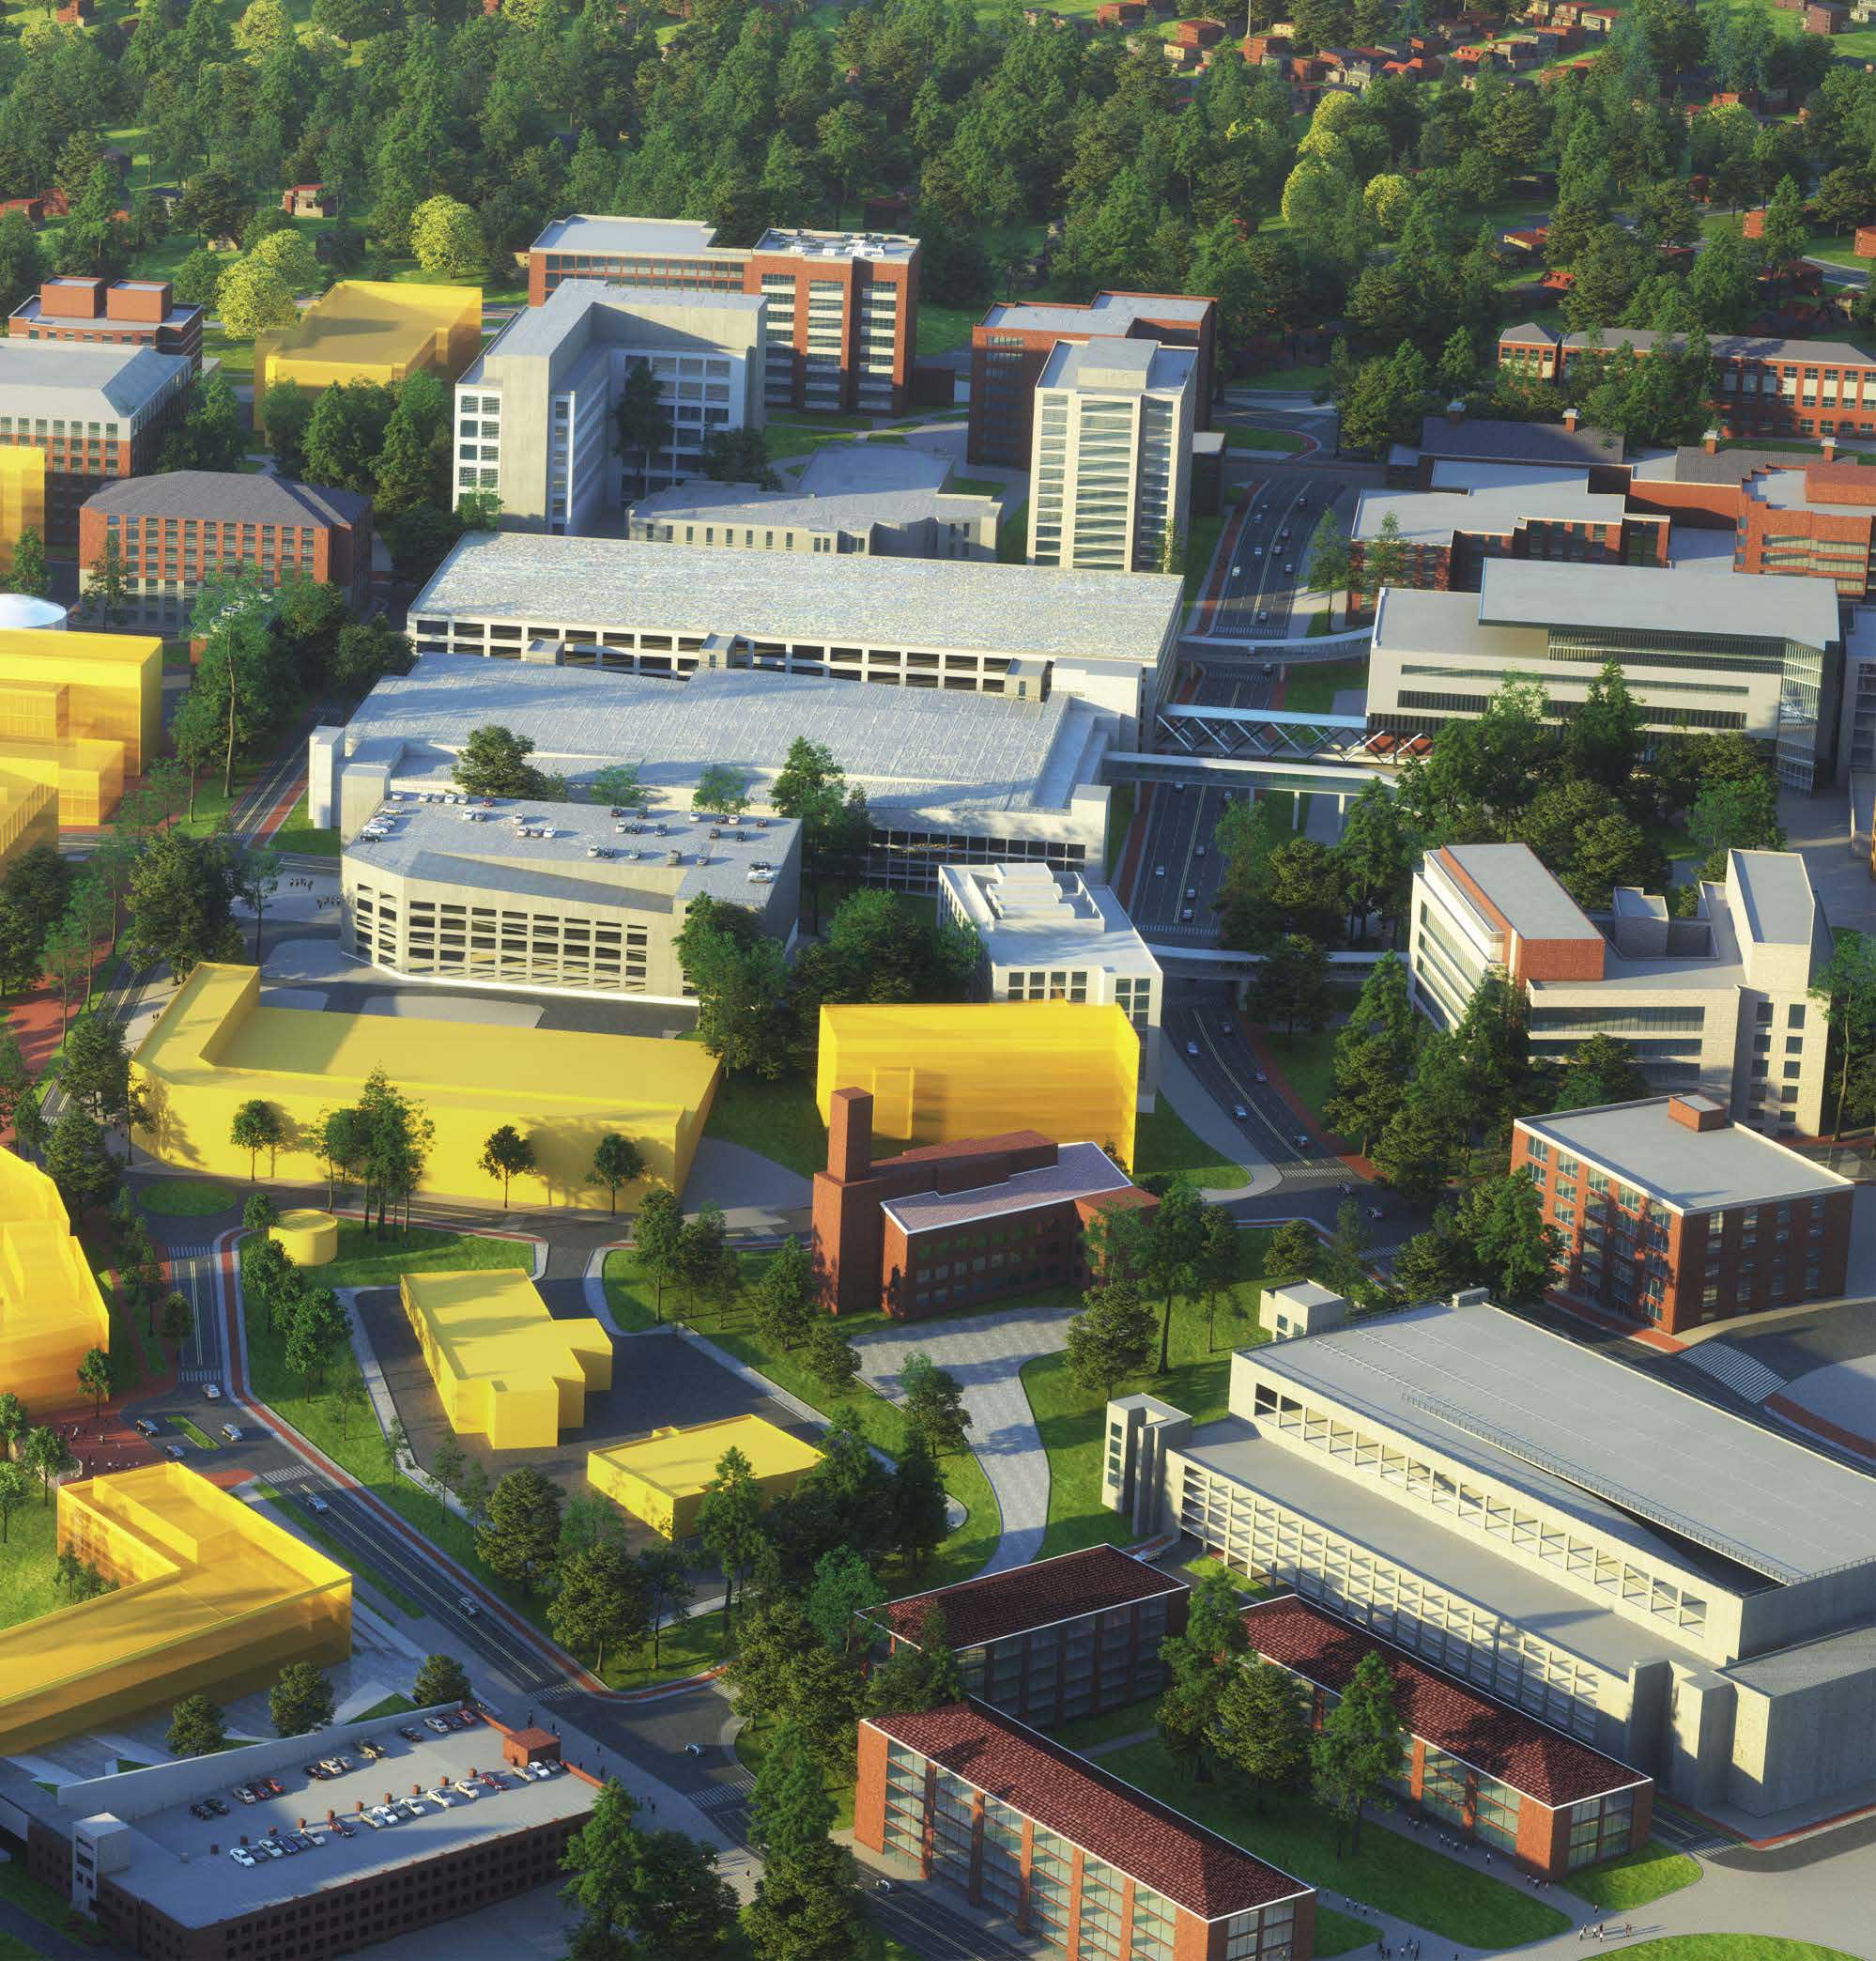 Campus South Hub Aerial View (Part 2)